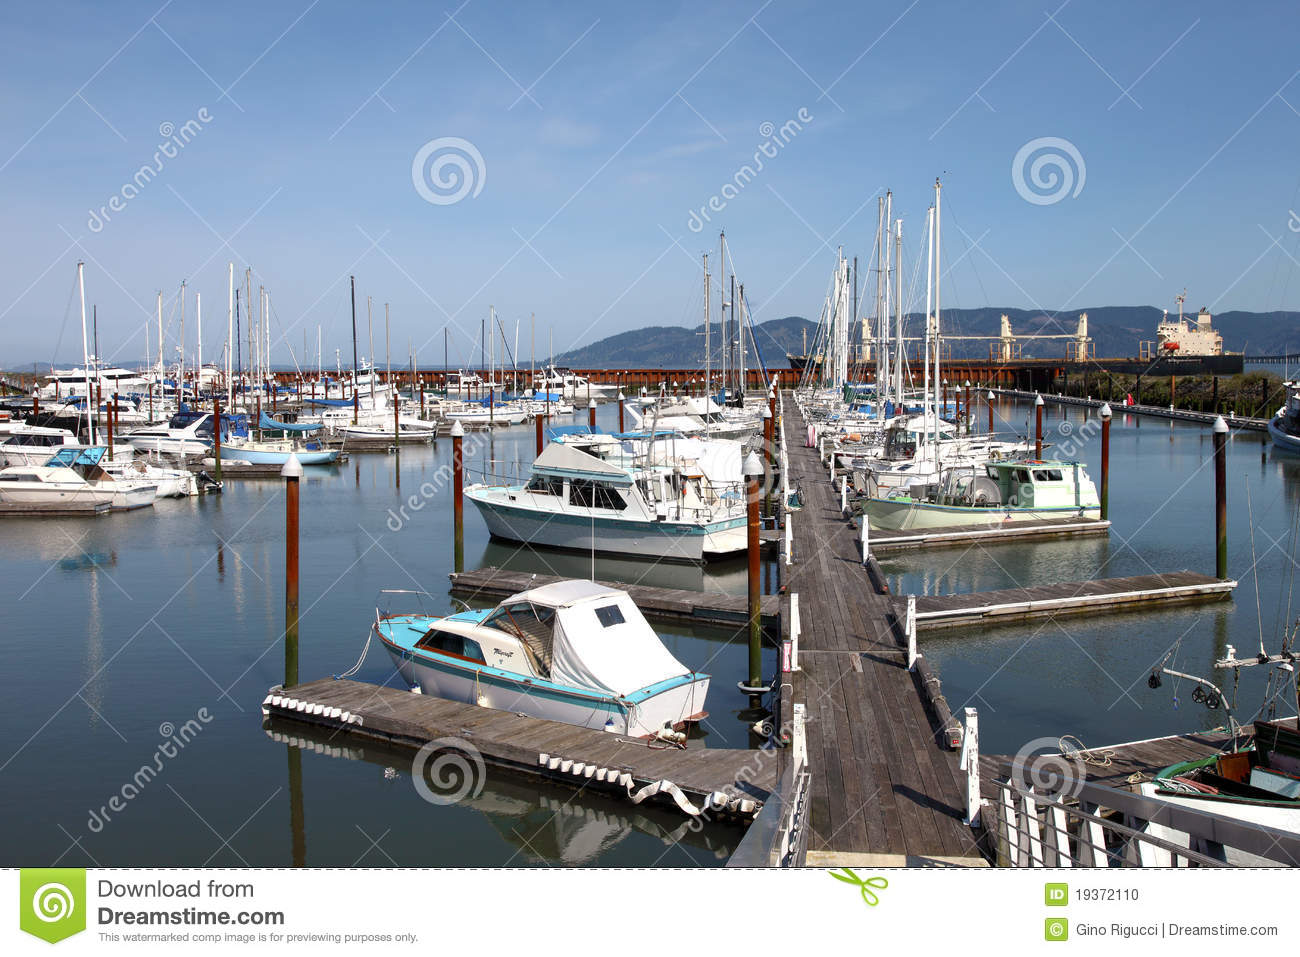 Fishing Boats   Small Yachts In A Marina  Stock Photo   Image